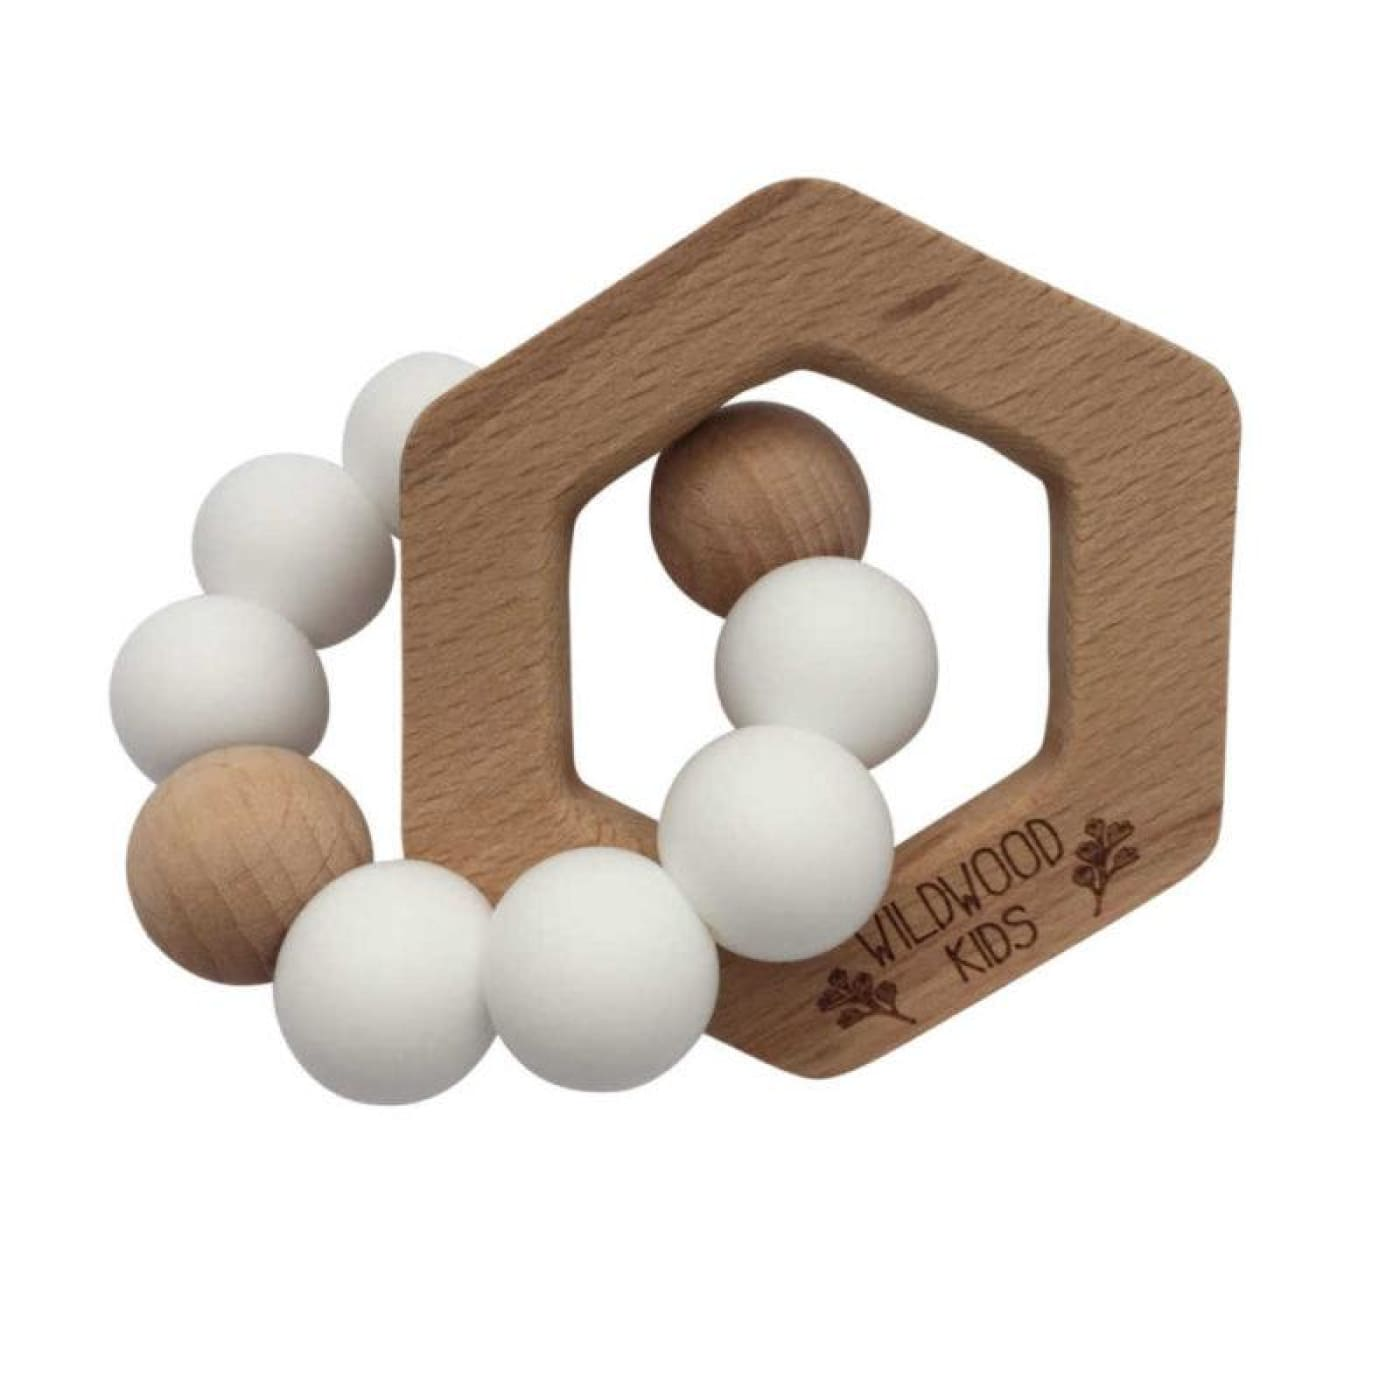 Wildwood Kids Teether - Hexagon Scandi White - NURSING & FEEDING - TEETHERS/TEETHING JEWELLERY